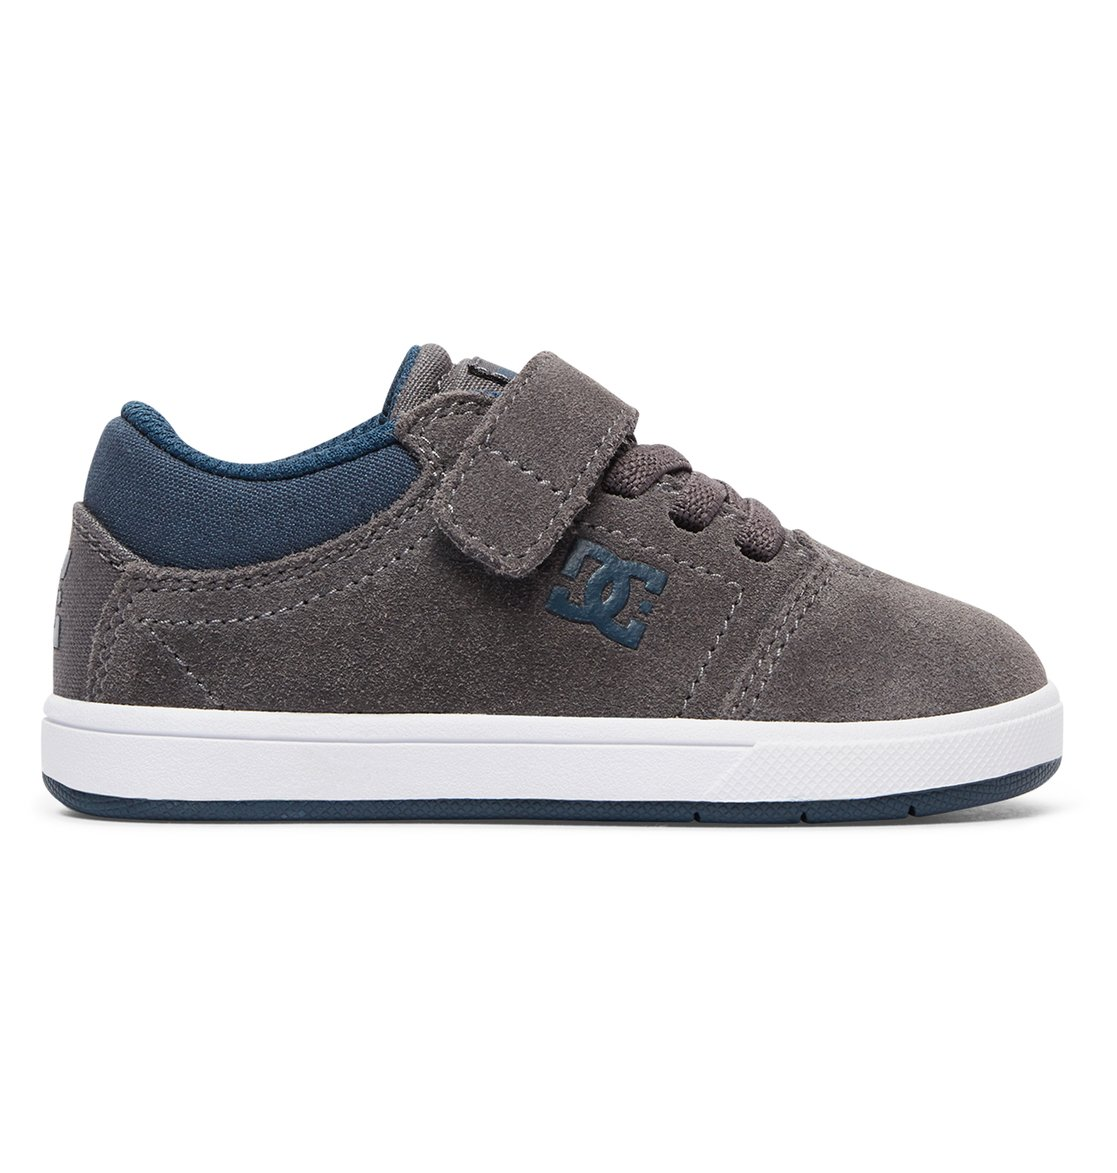 Shoes Toddler Crisis Adts